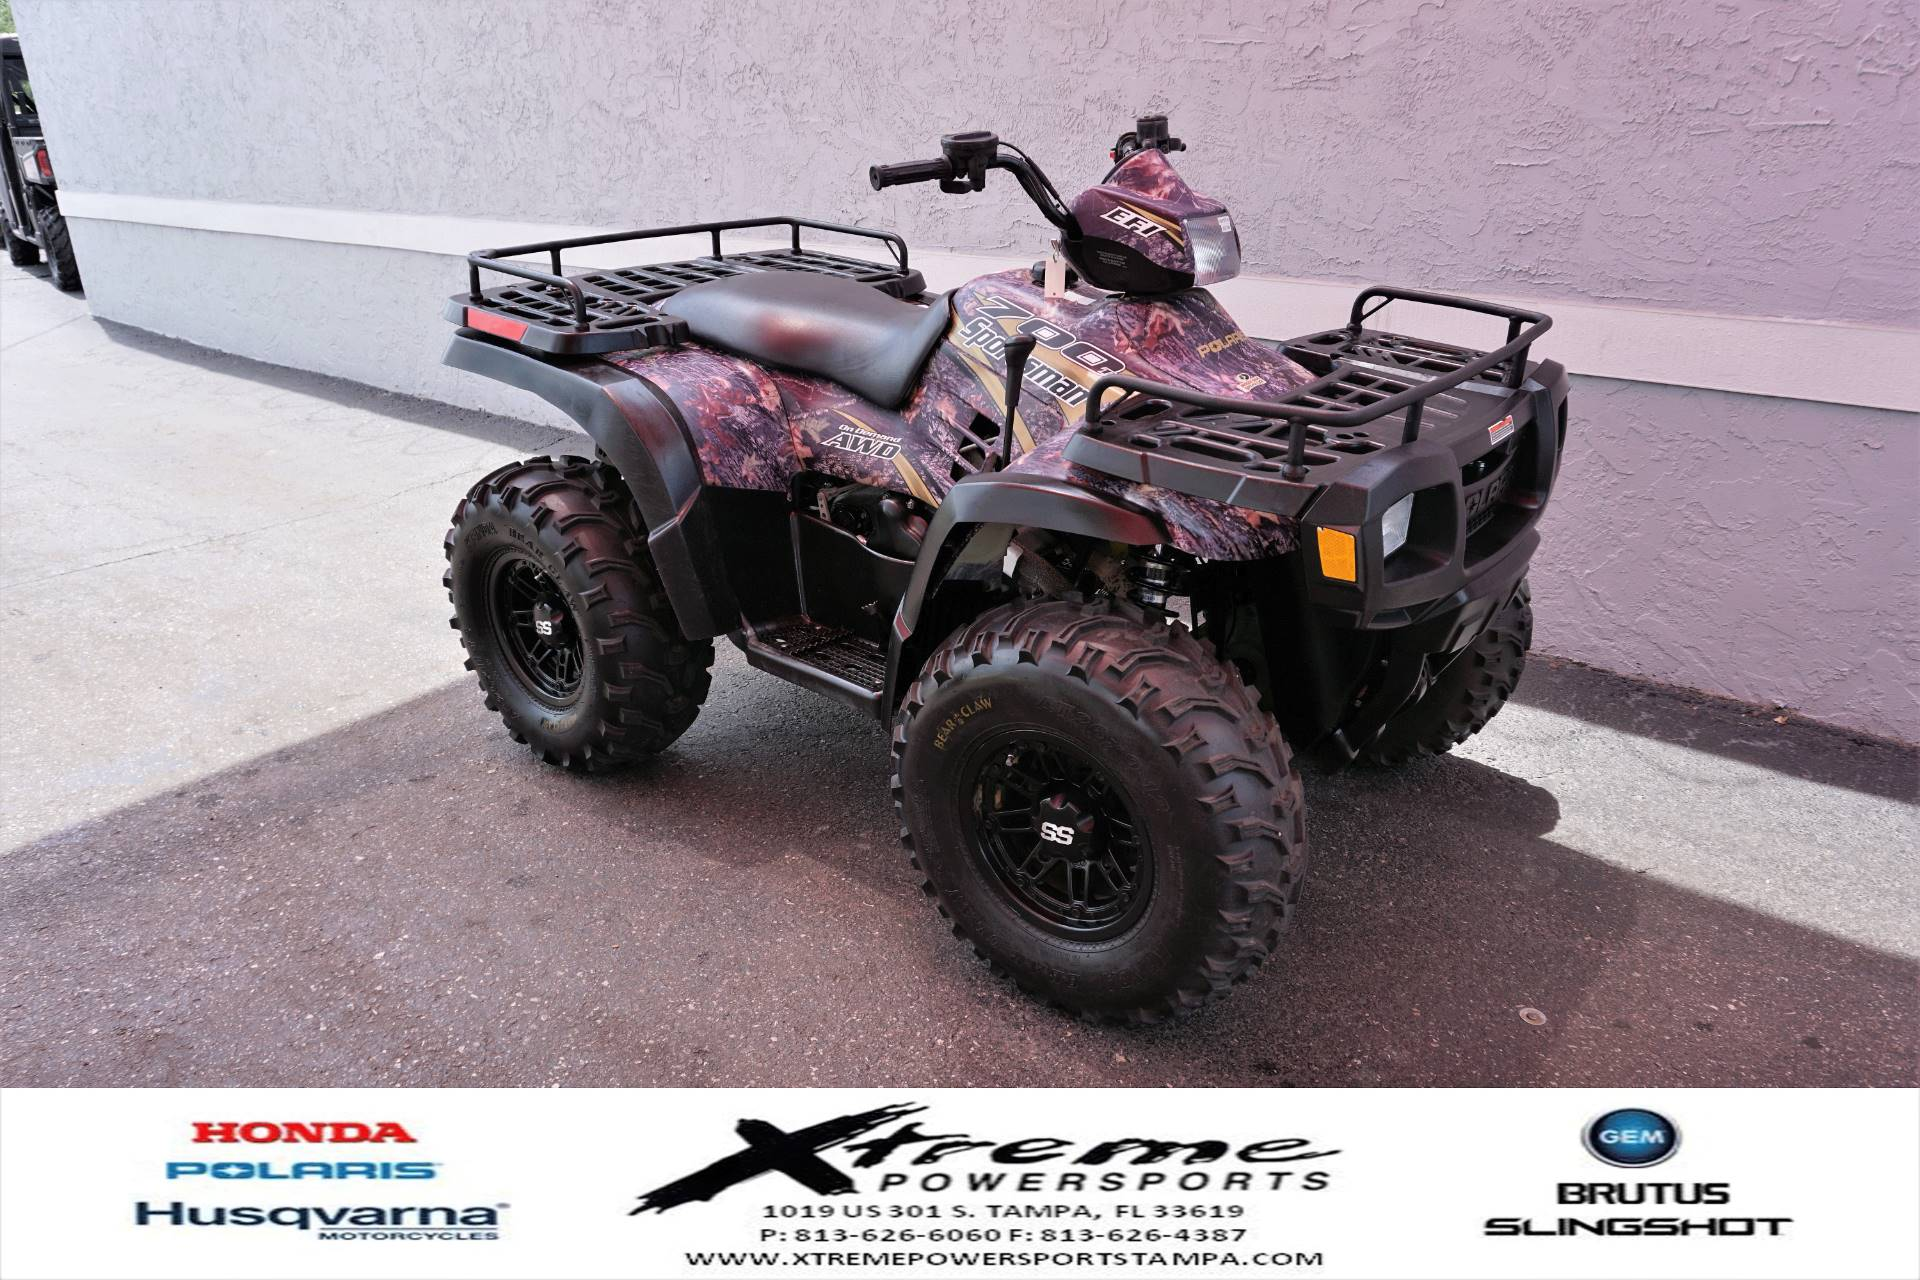 2004 Polaris SPORTSMAN 700 in Tampa, Florida - Photo 8